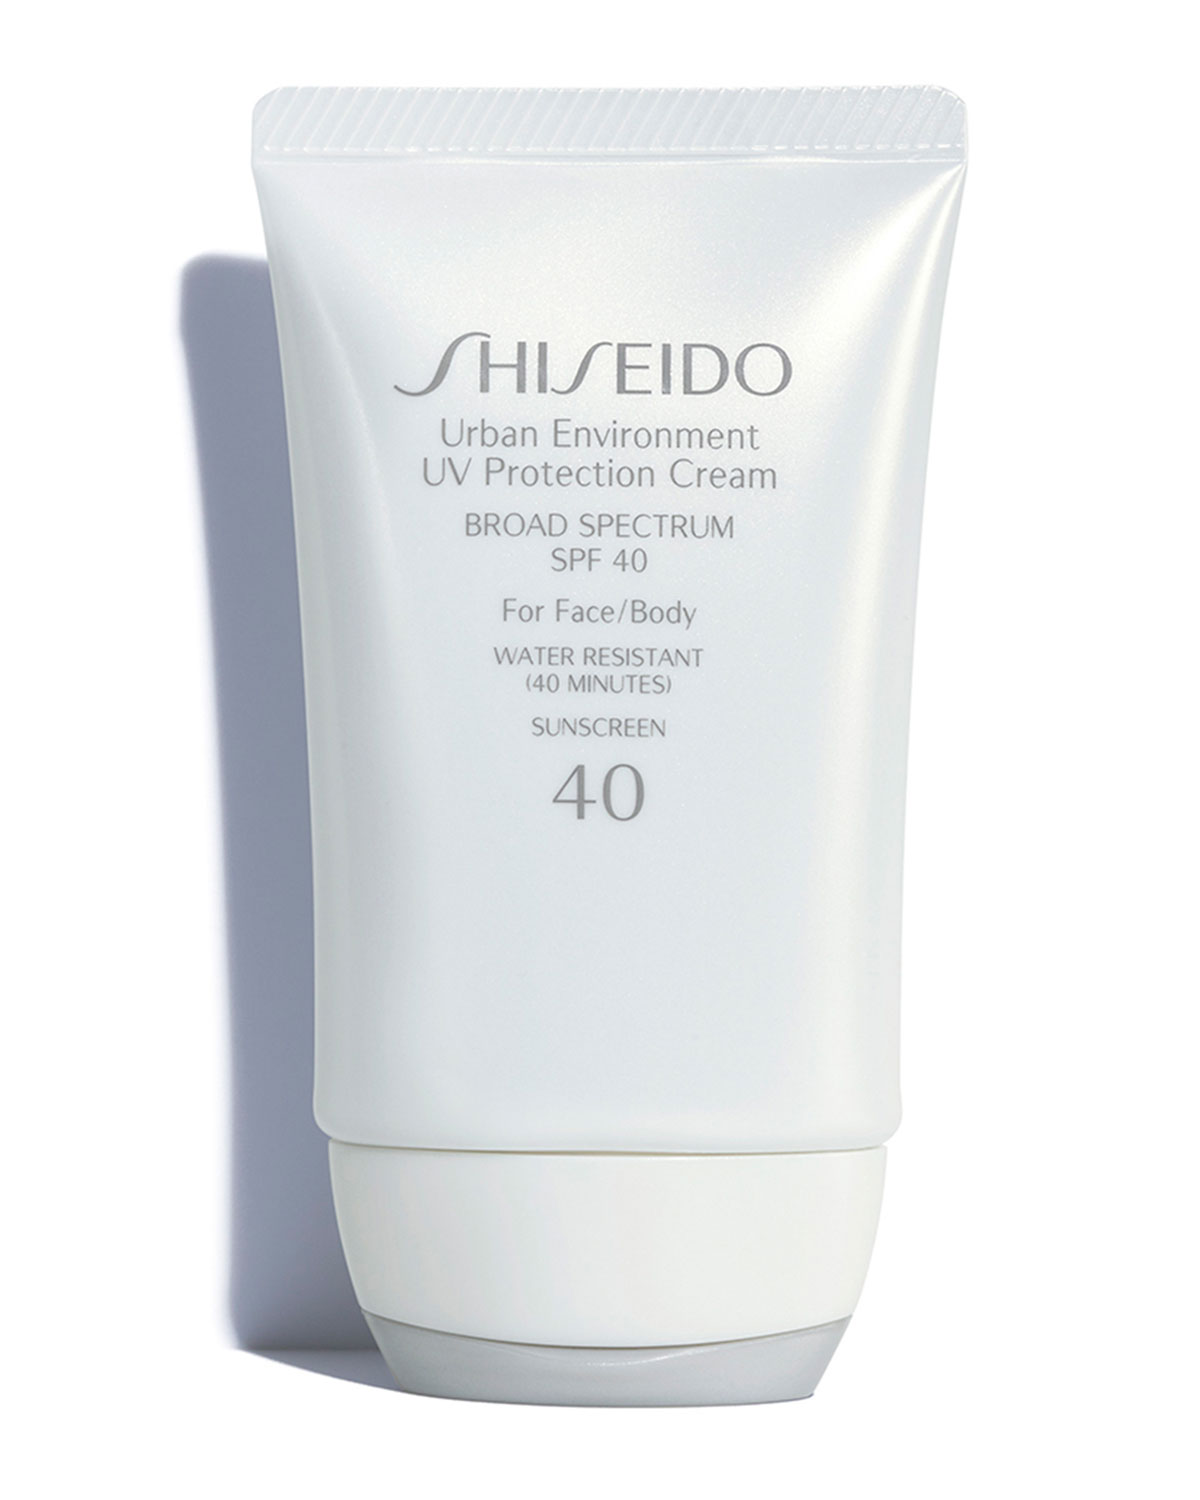 Shiseido 1.7 oz. Urban Environment UV Protection Cream SPF 40